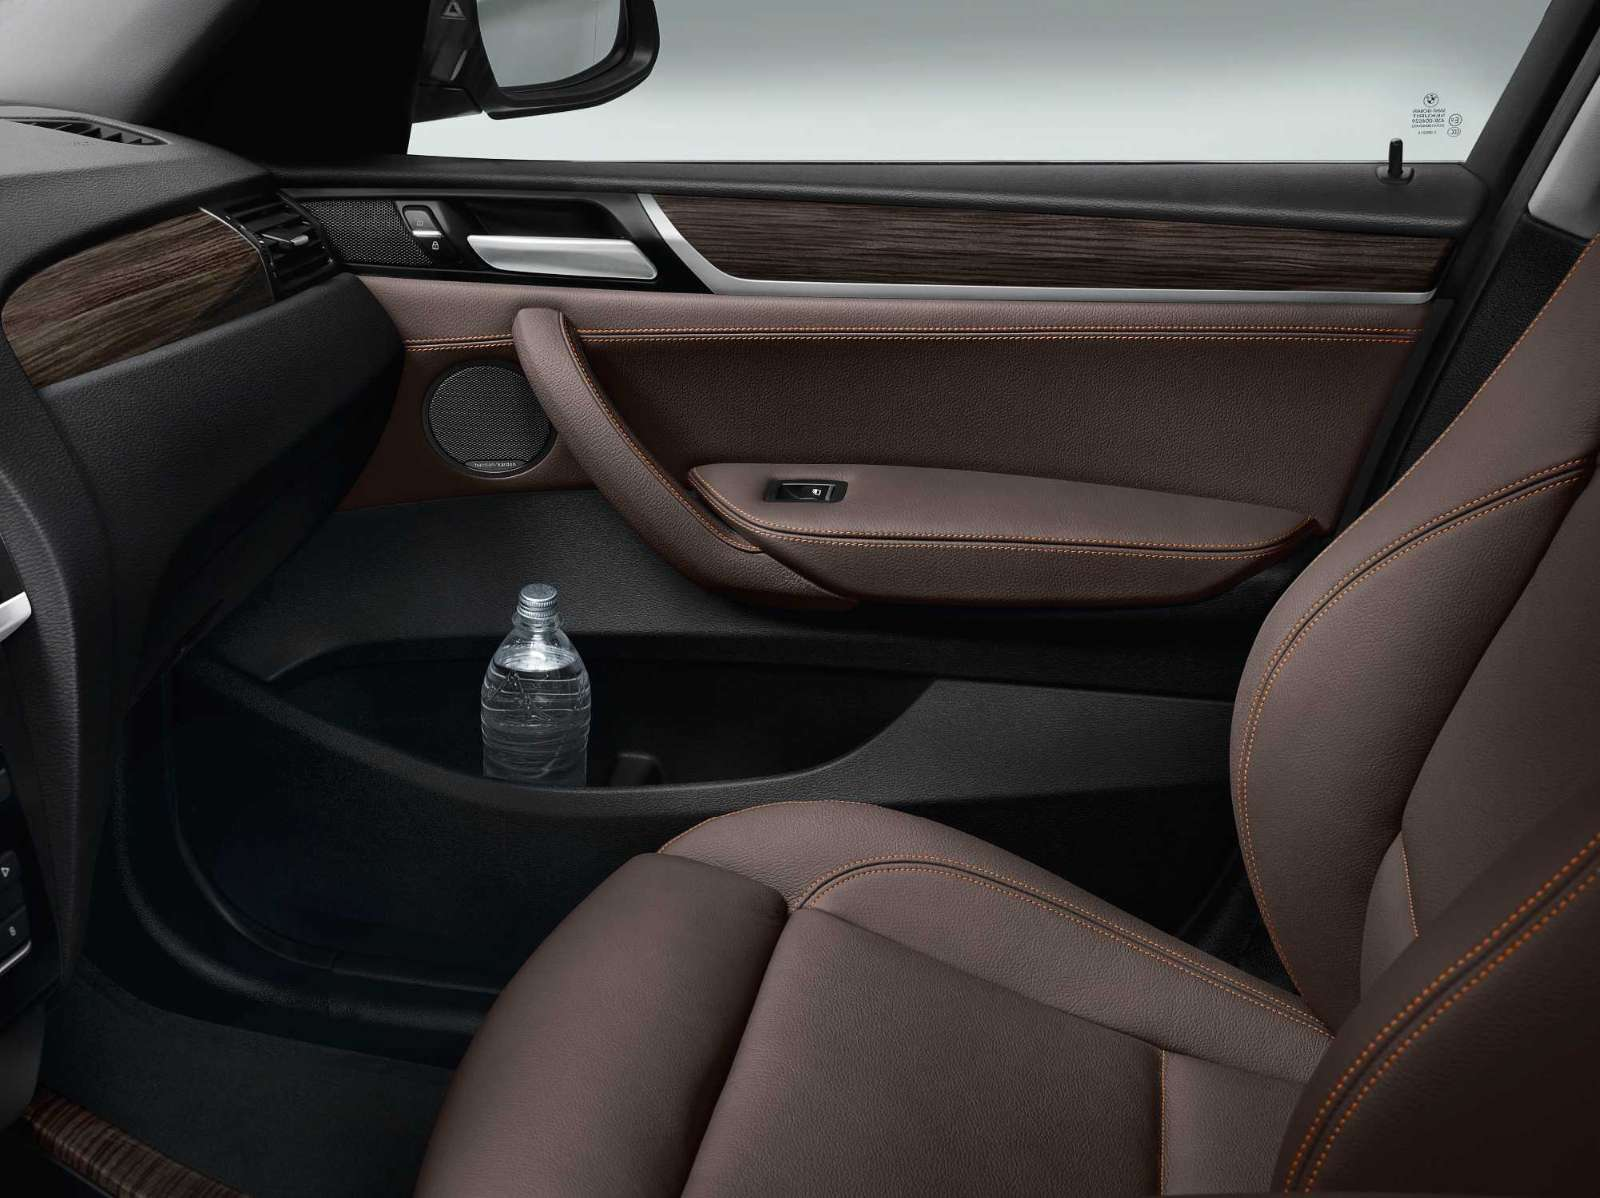 BMW X3 2015 Facelift interior